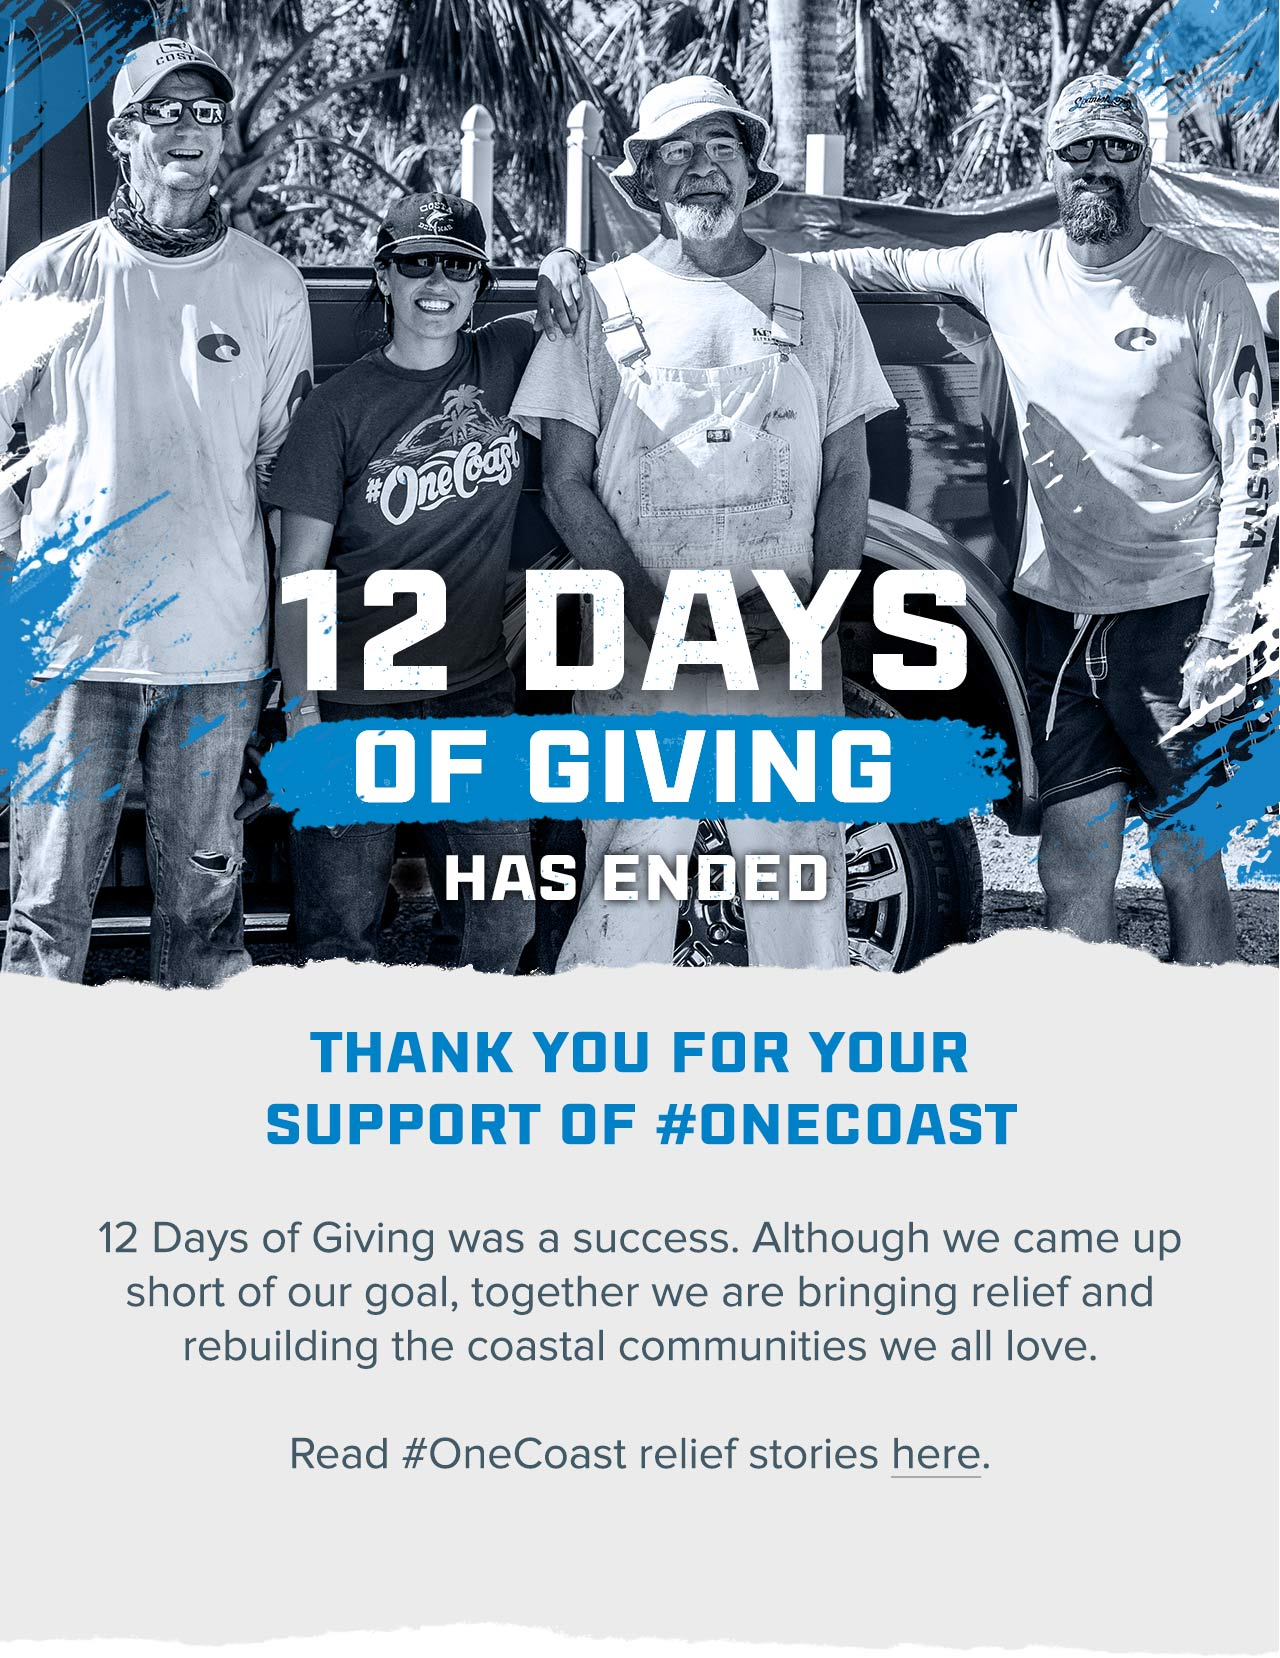 12 Days of Giving - Thank You